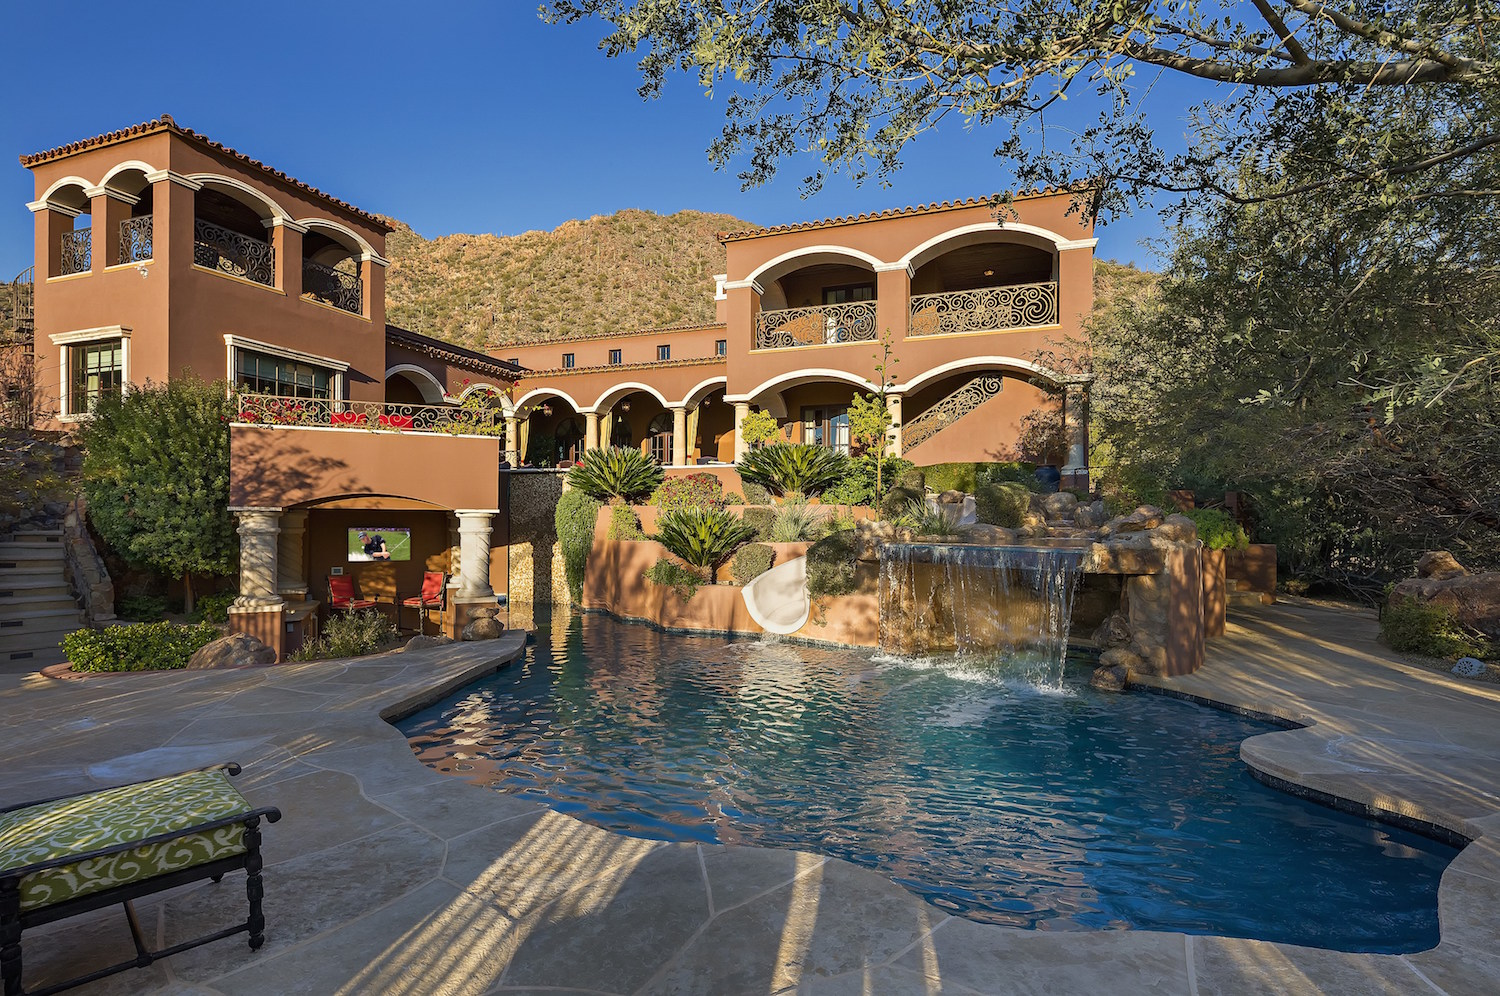 3 High End Scottsdale Mountain Homes For Sale With City